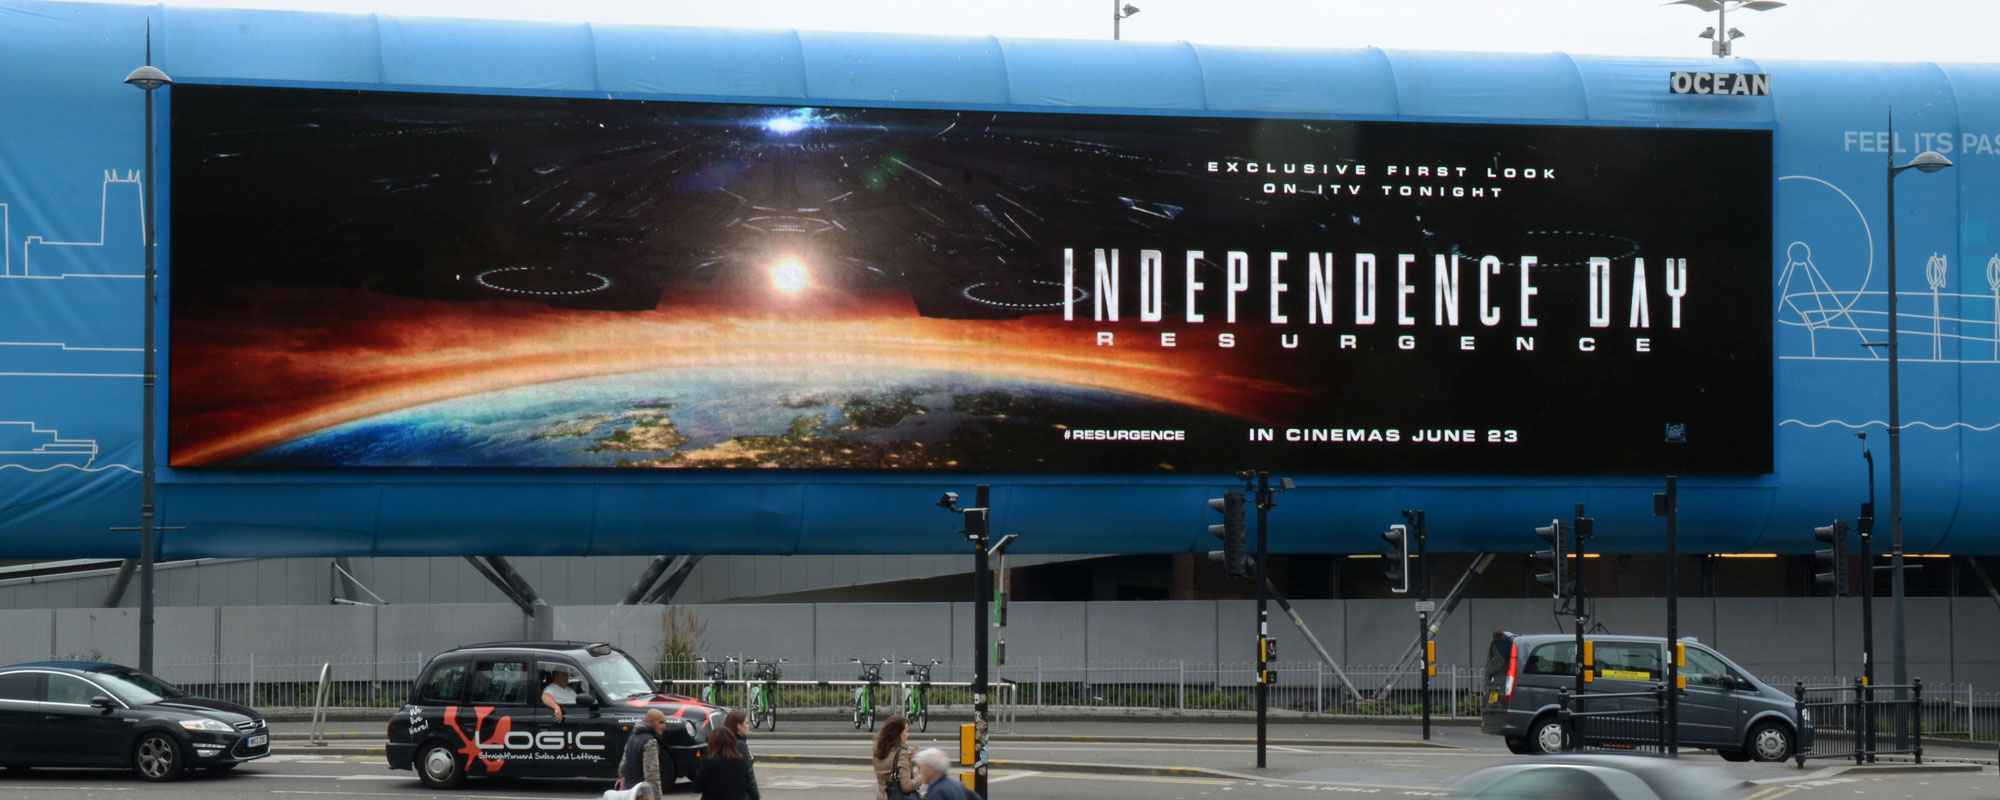 Rapport Independence Day: Resurgence